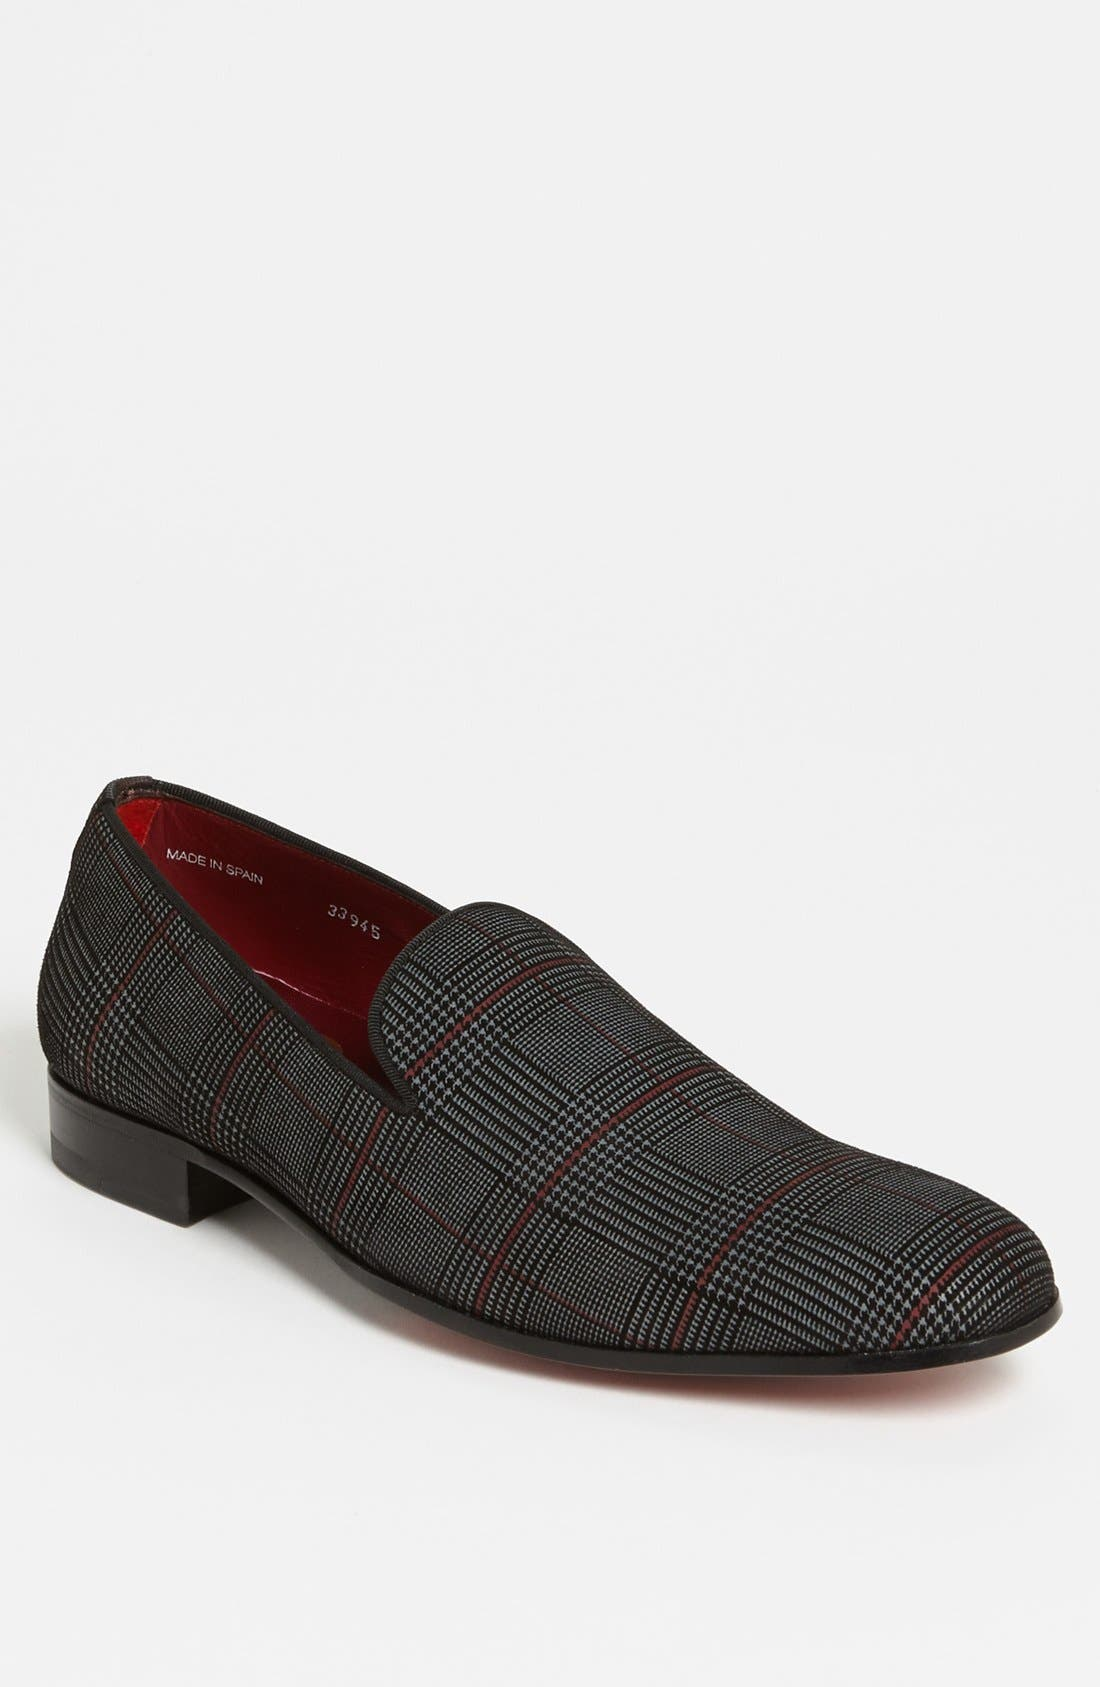 Alternate Image 1 Selected - Mezlan 'Prizzi' Loafer